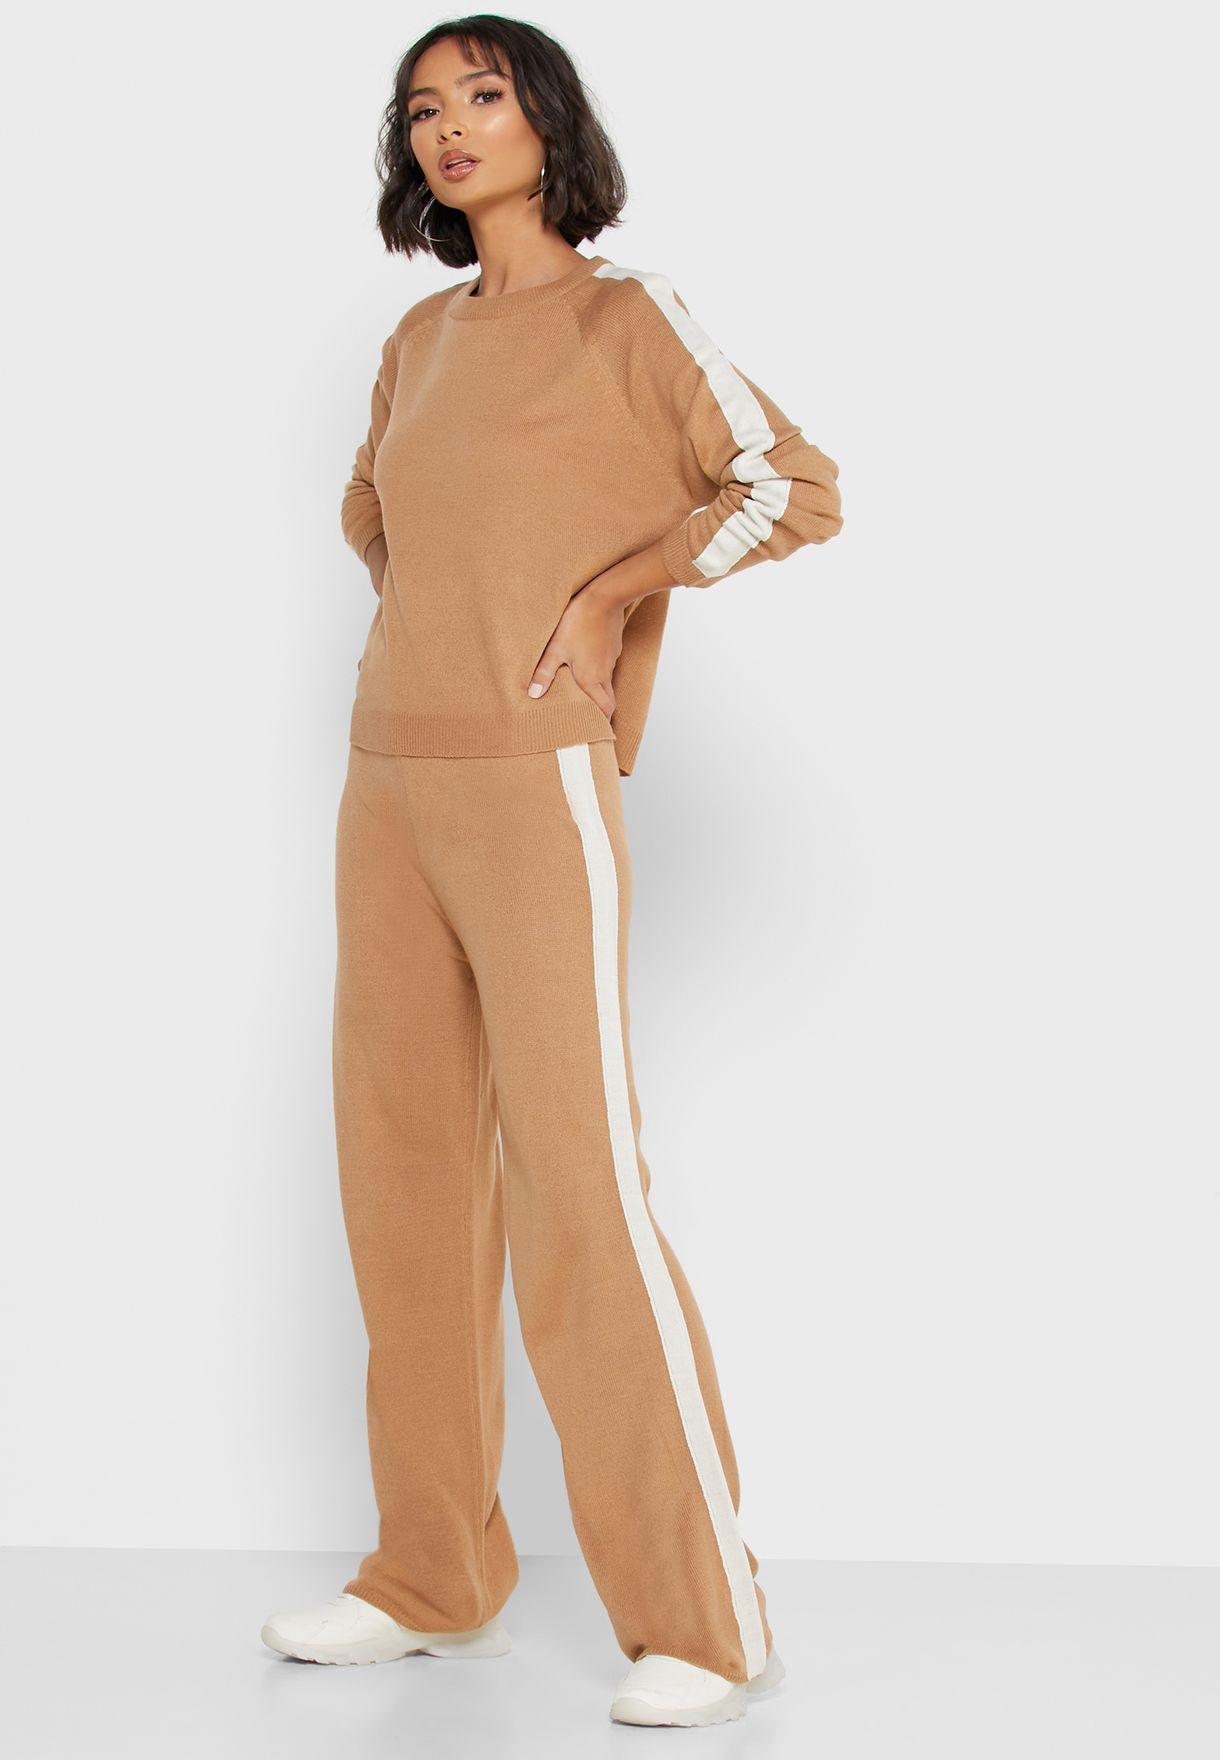 Contrast Side Paneled Pants Set